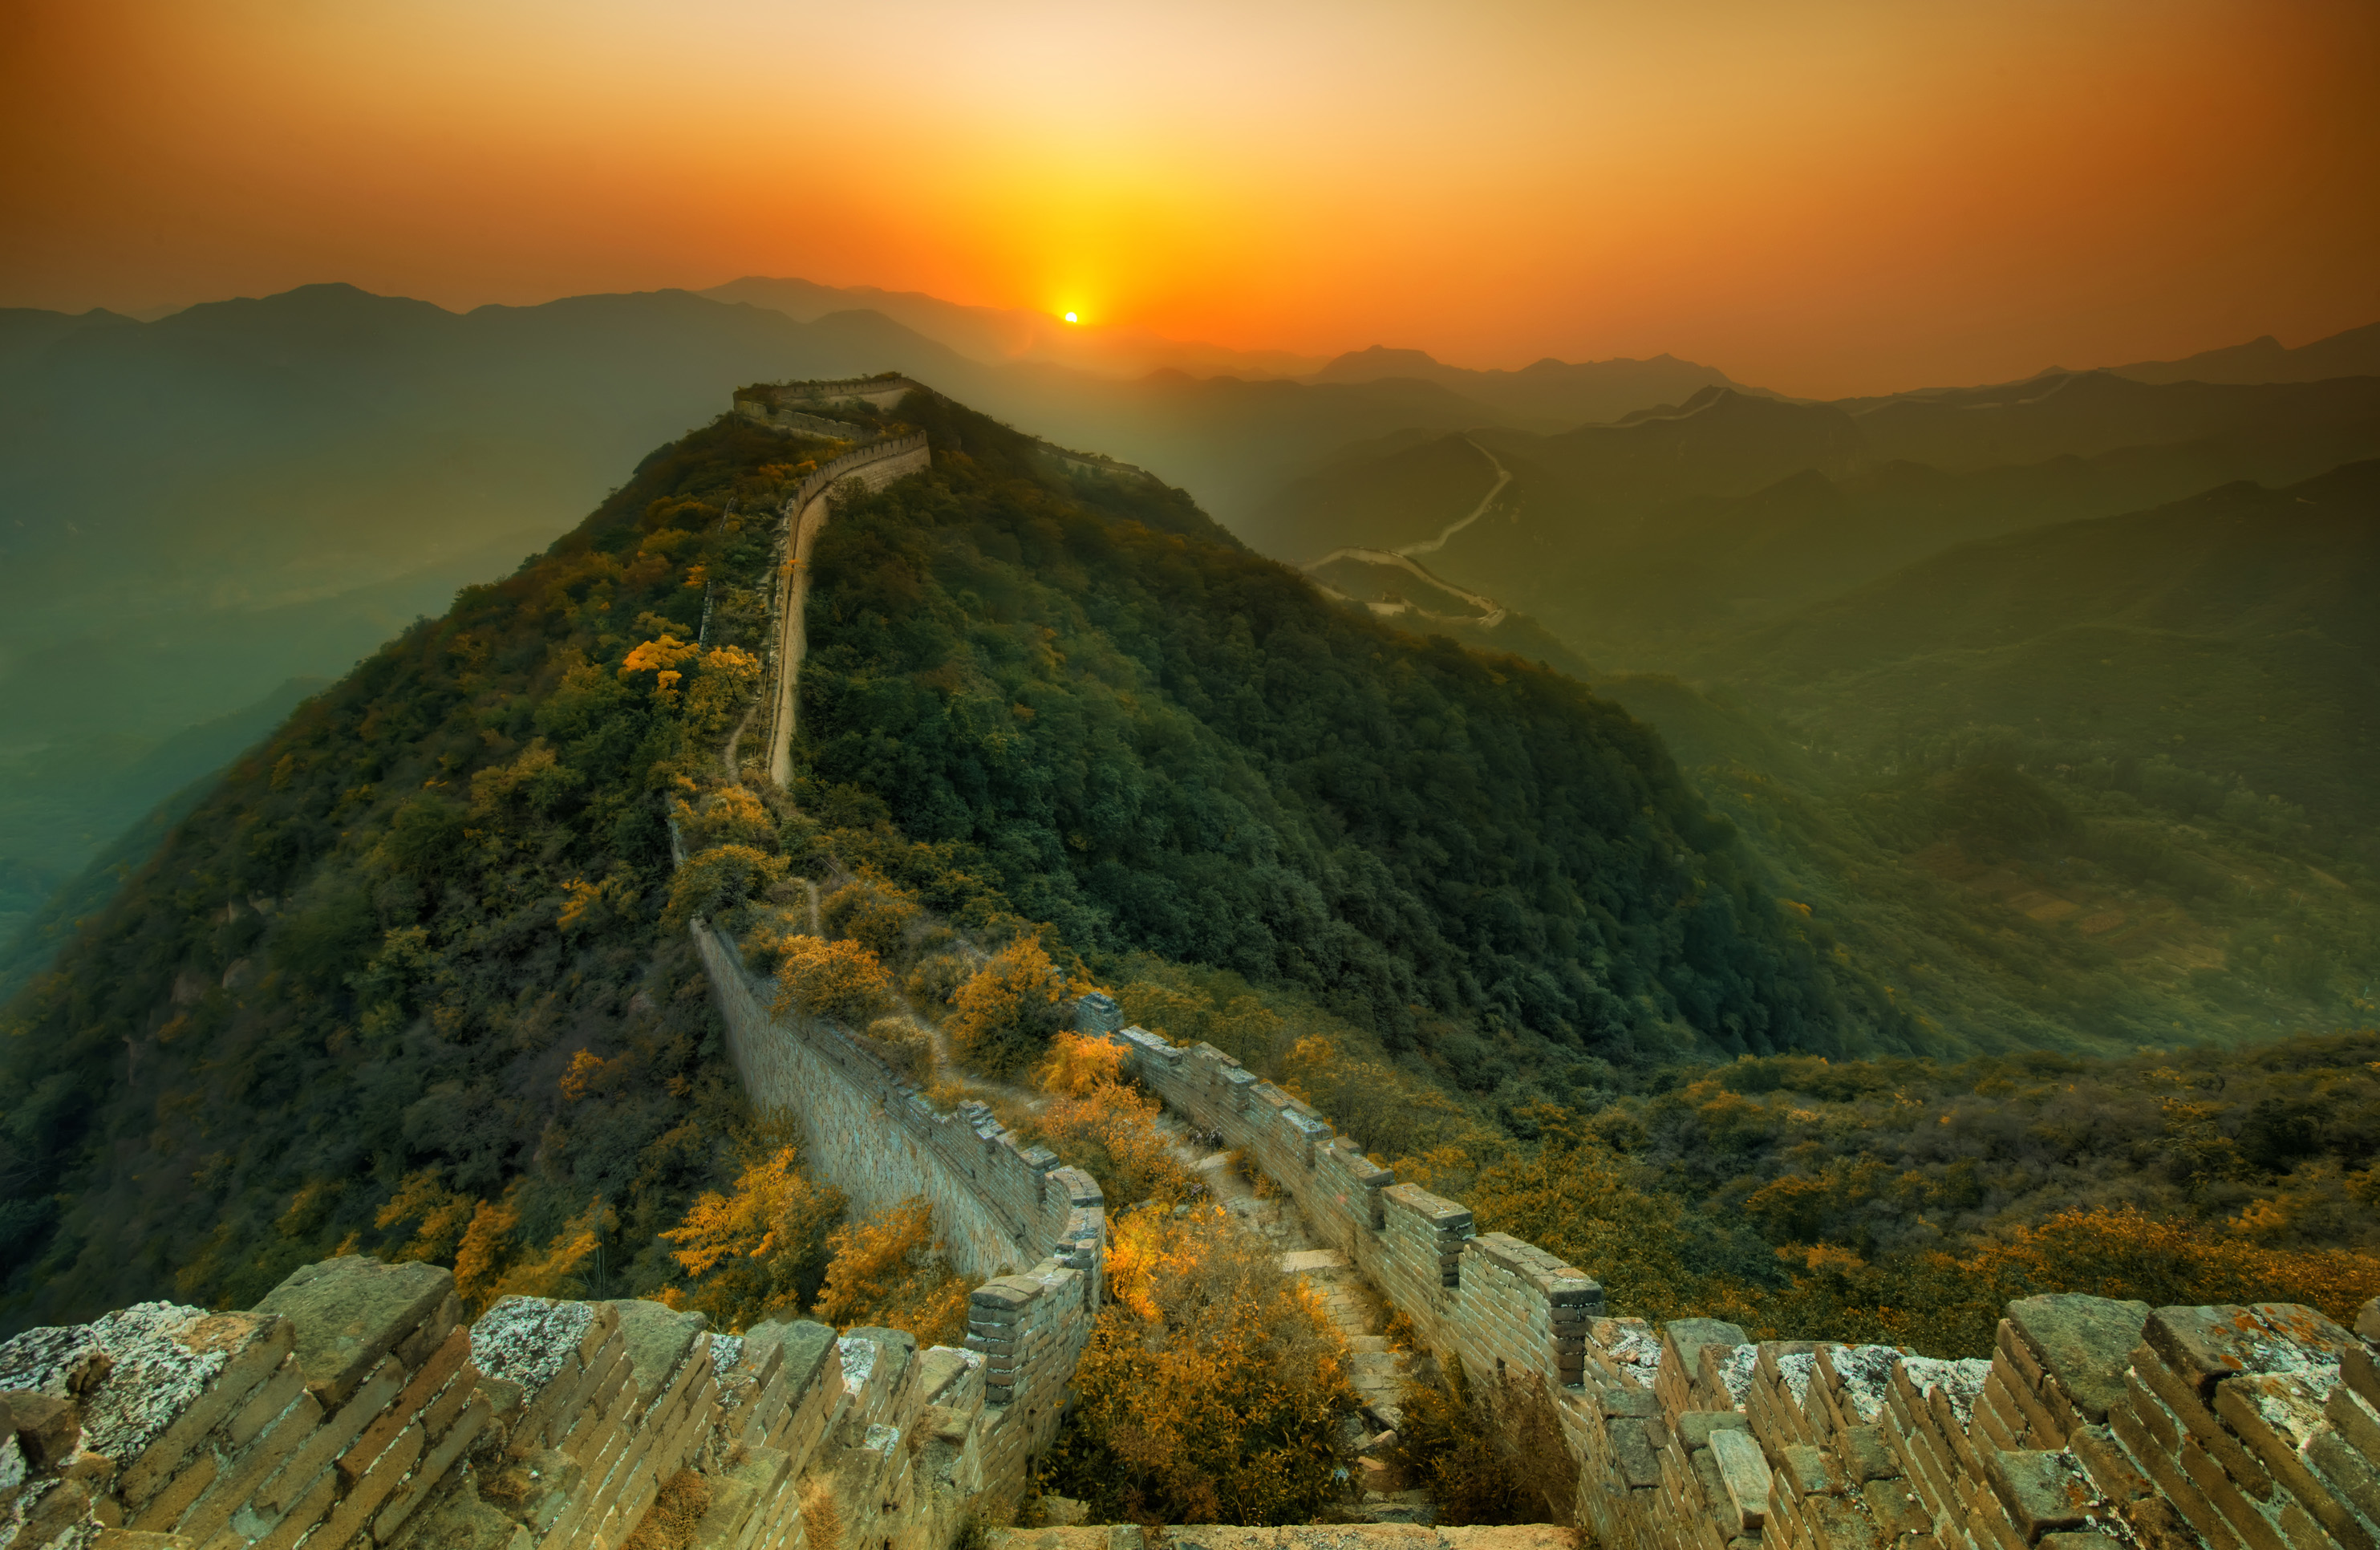 Daily Wallpaper The Great Wall of China I Like To Waste My Time 2967x1932